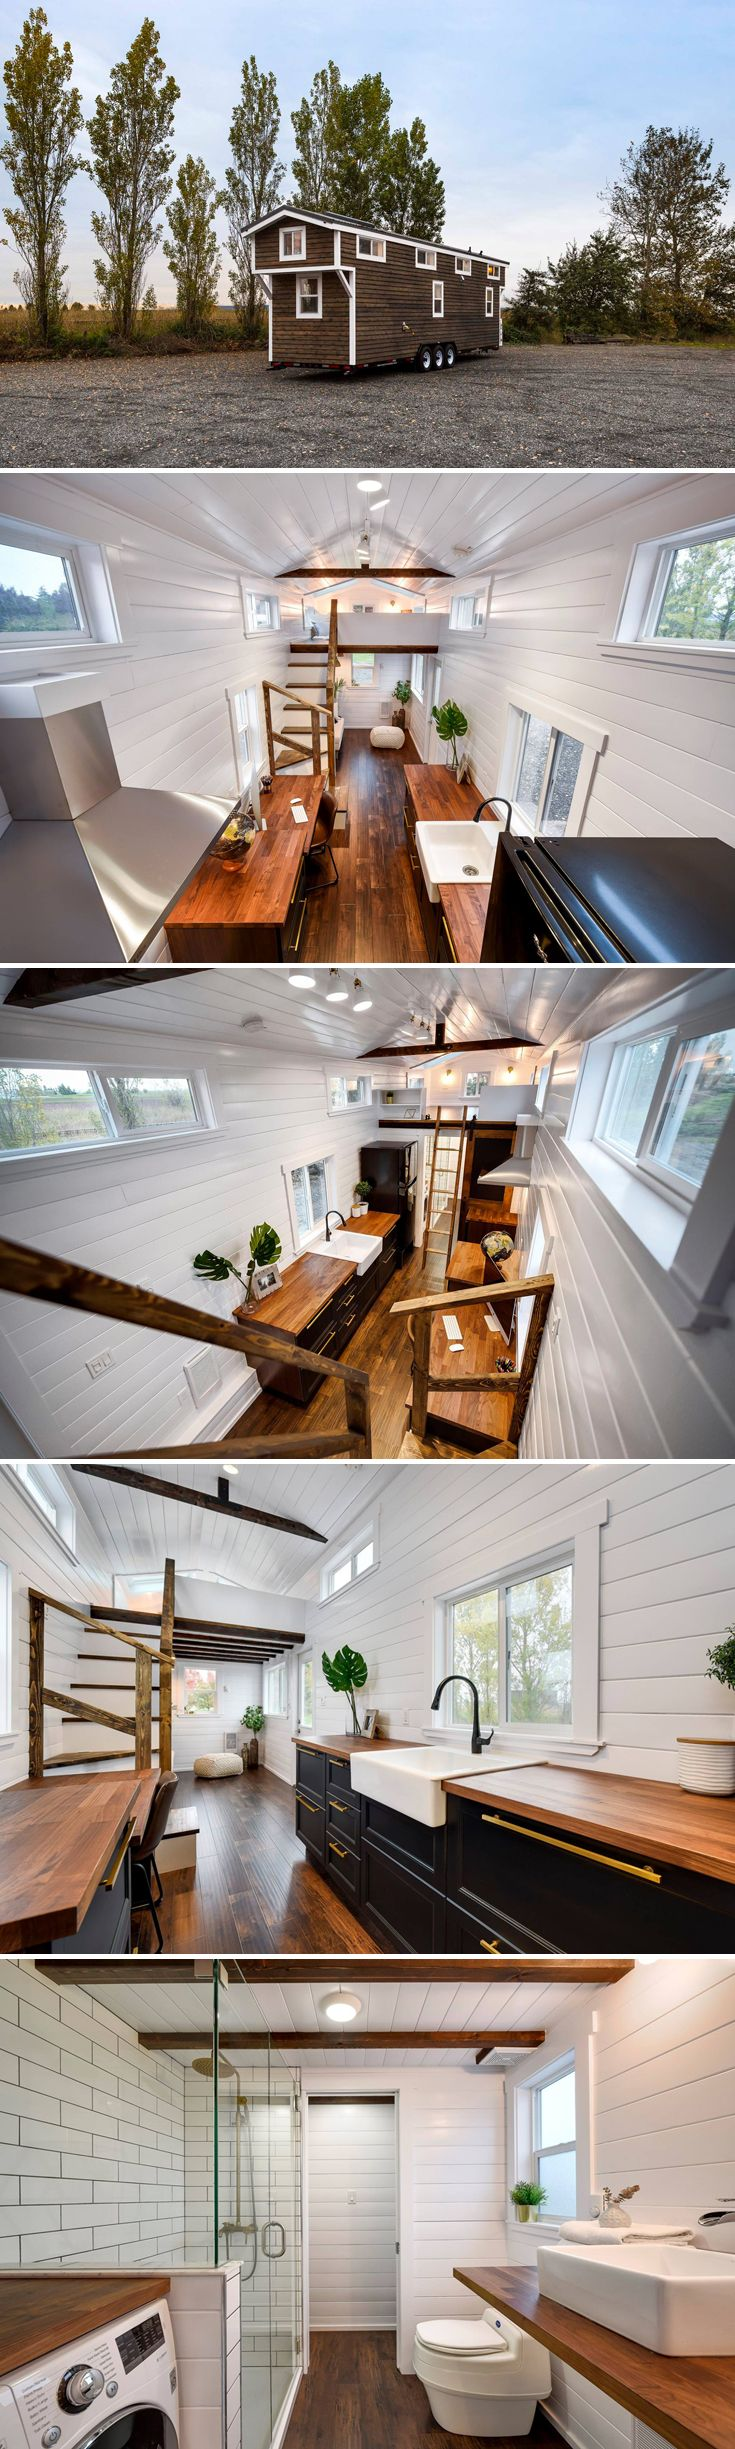 From Mint Tiny Homes is a custom 34' Loft Edition with dark cabinetry and gold hardware. Includes an office area for those looking to work from home.